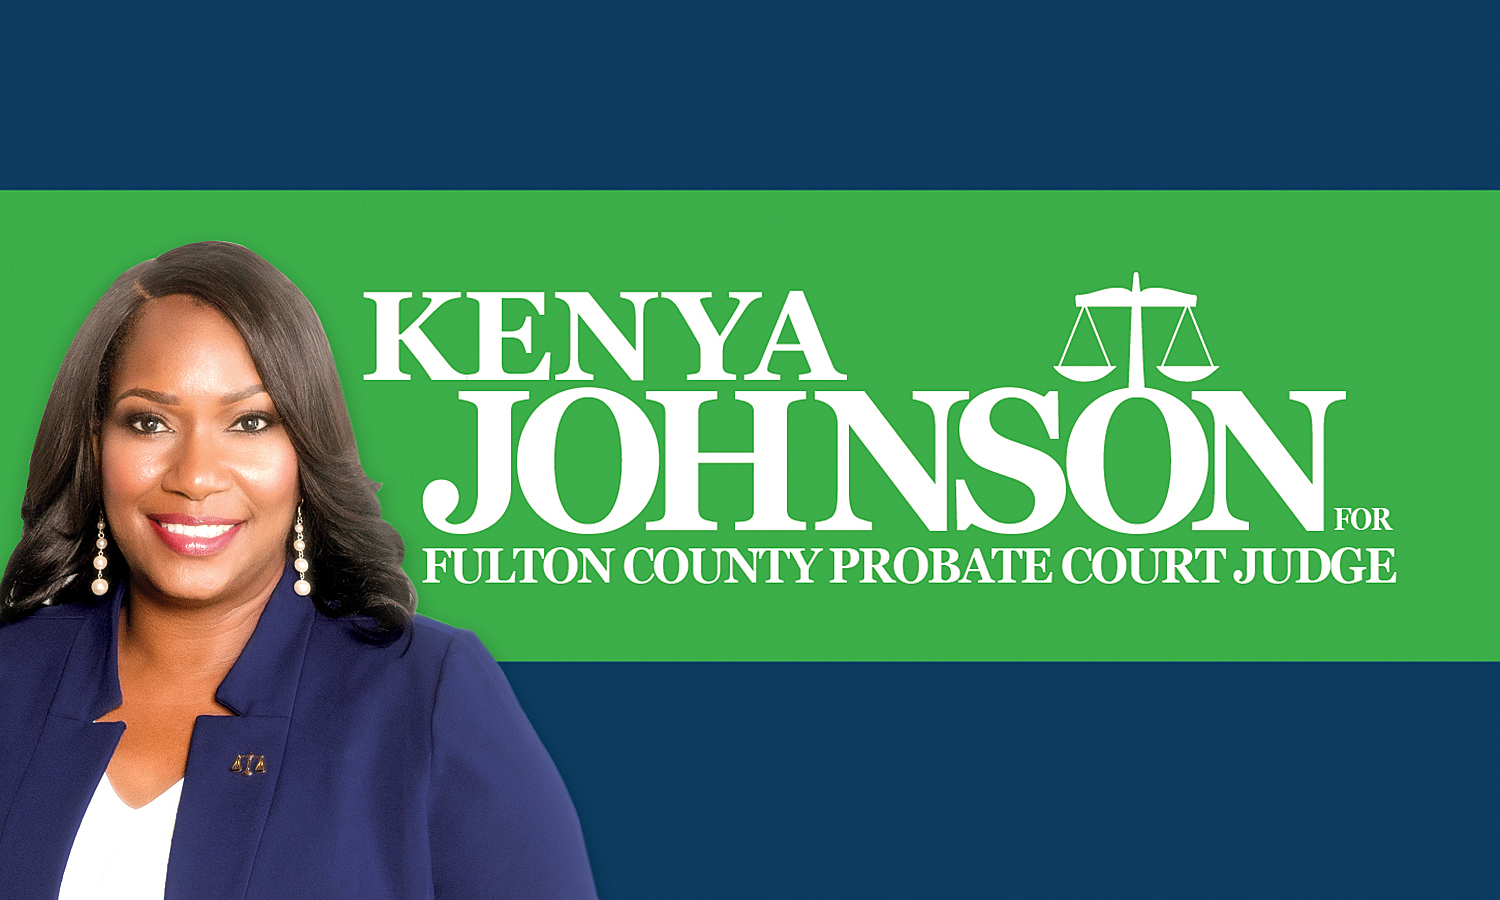 Kenya Johnson For Fulton County Judge: Elect Kenya Johnson